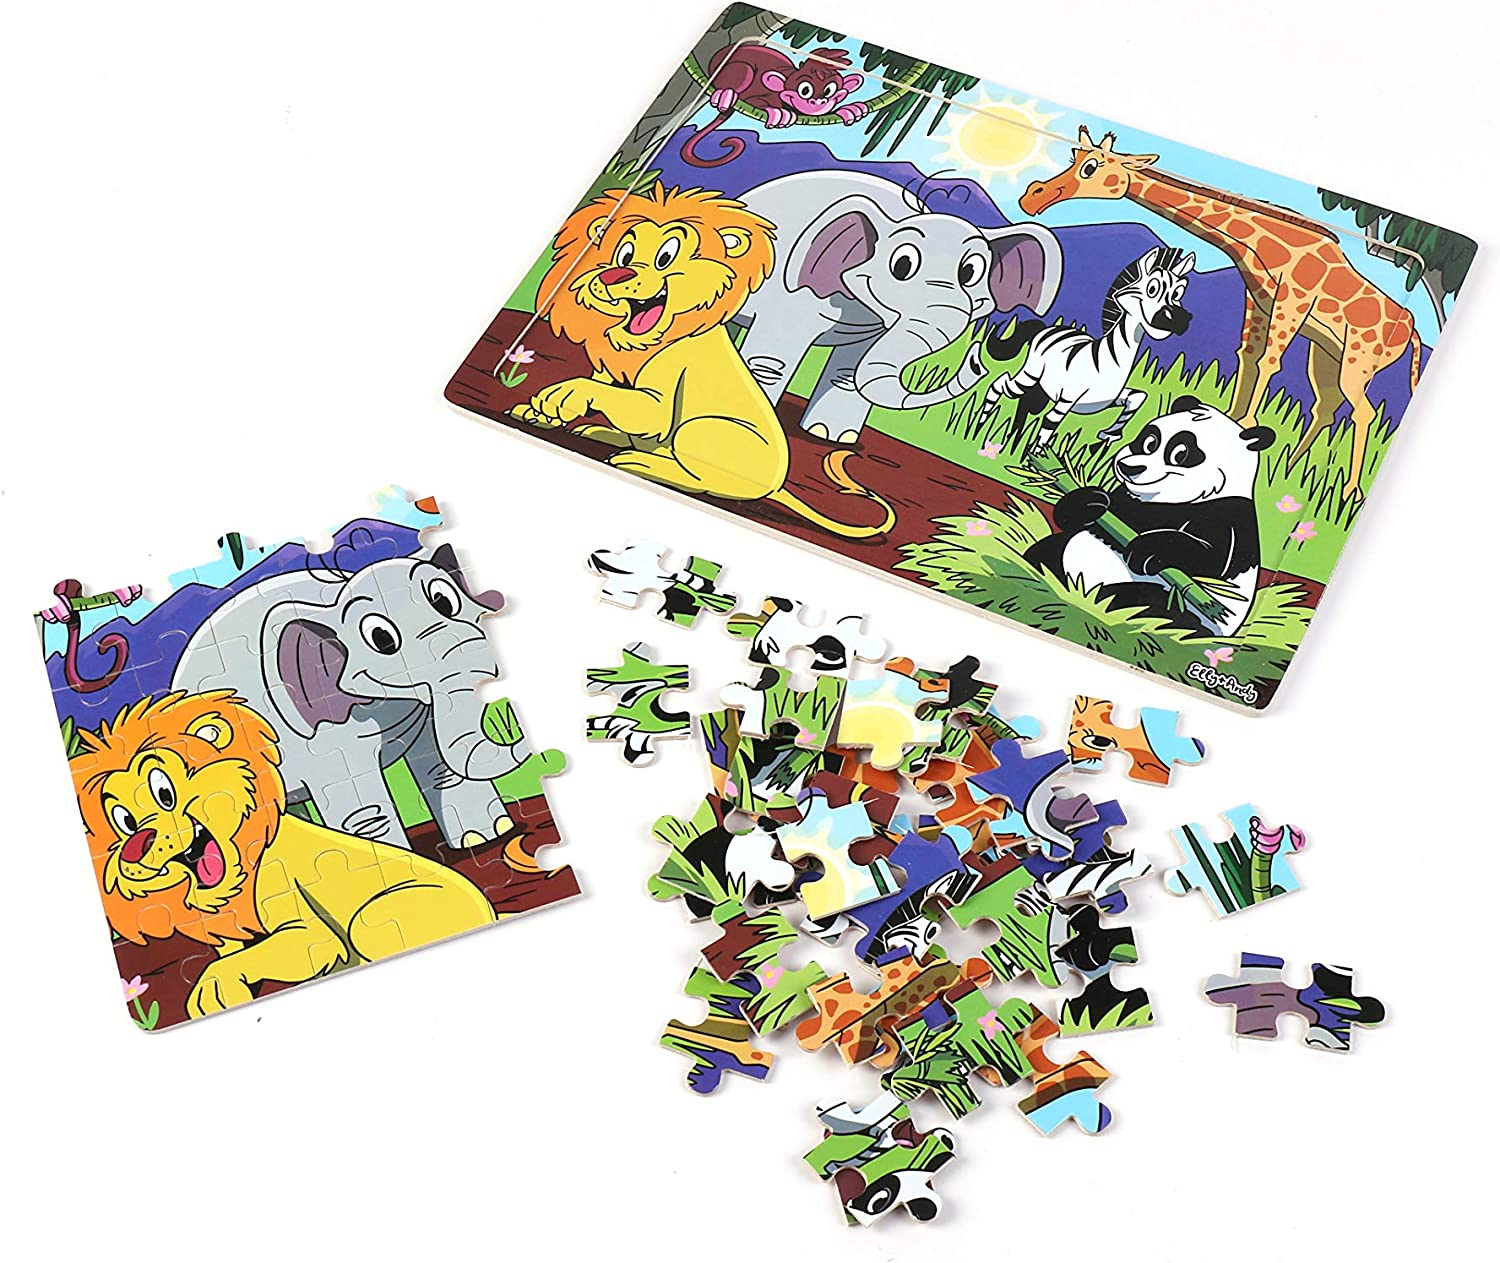 Ocean Elly /& Andy Set of 4 Wooden Puzzles 60 pcs Dinosaur Space Designed in The USA for Kids Ages 3-7 Preschool Educational Learning Toys Set for Toddlers Safari